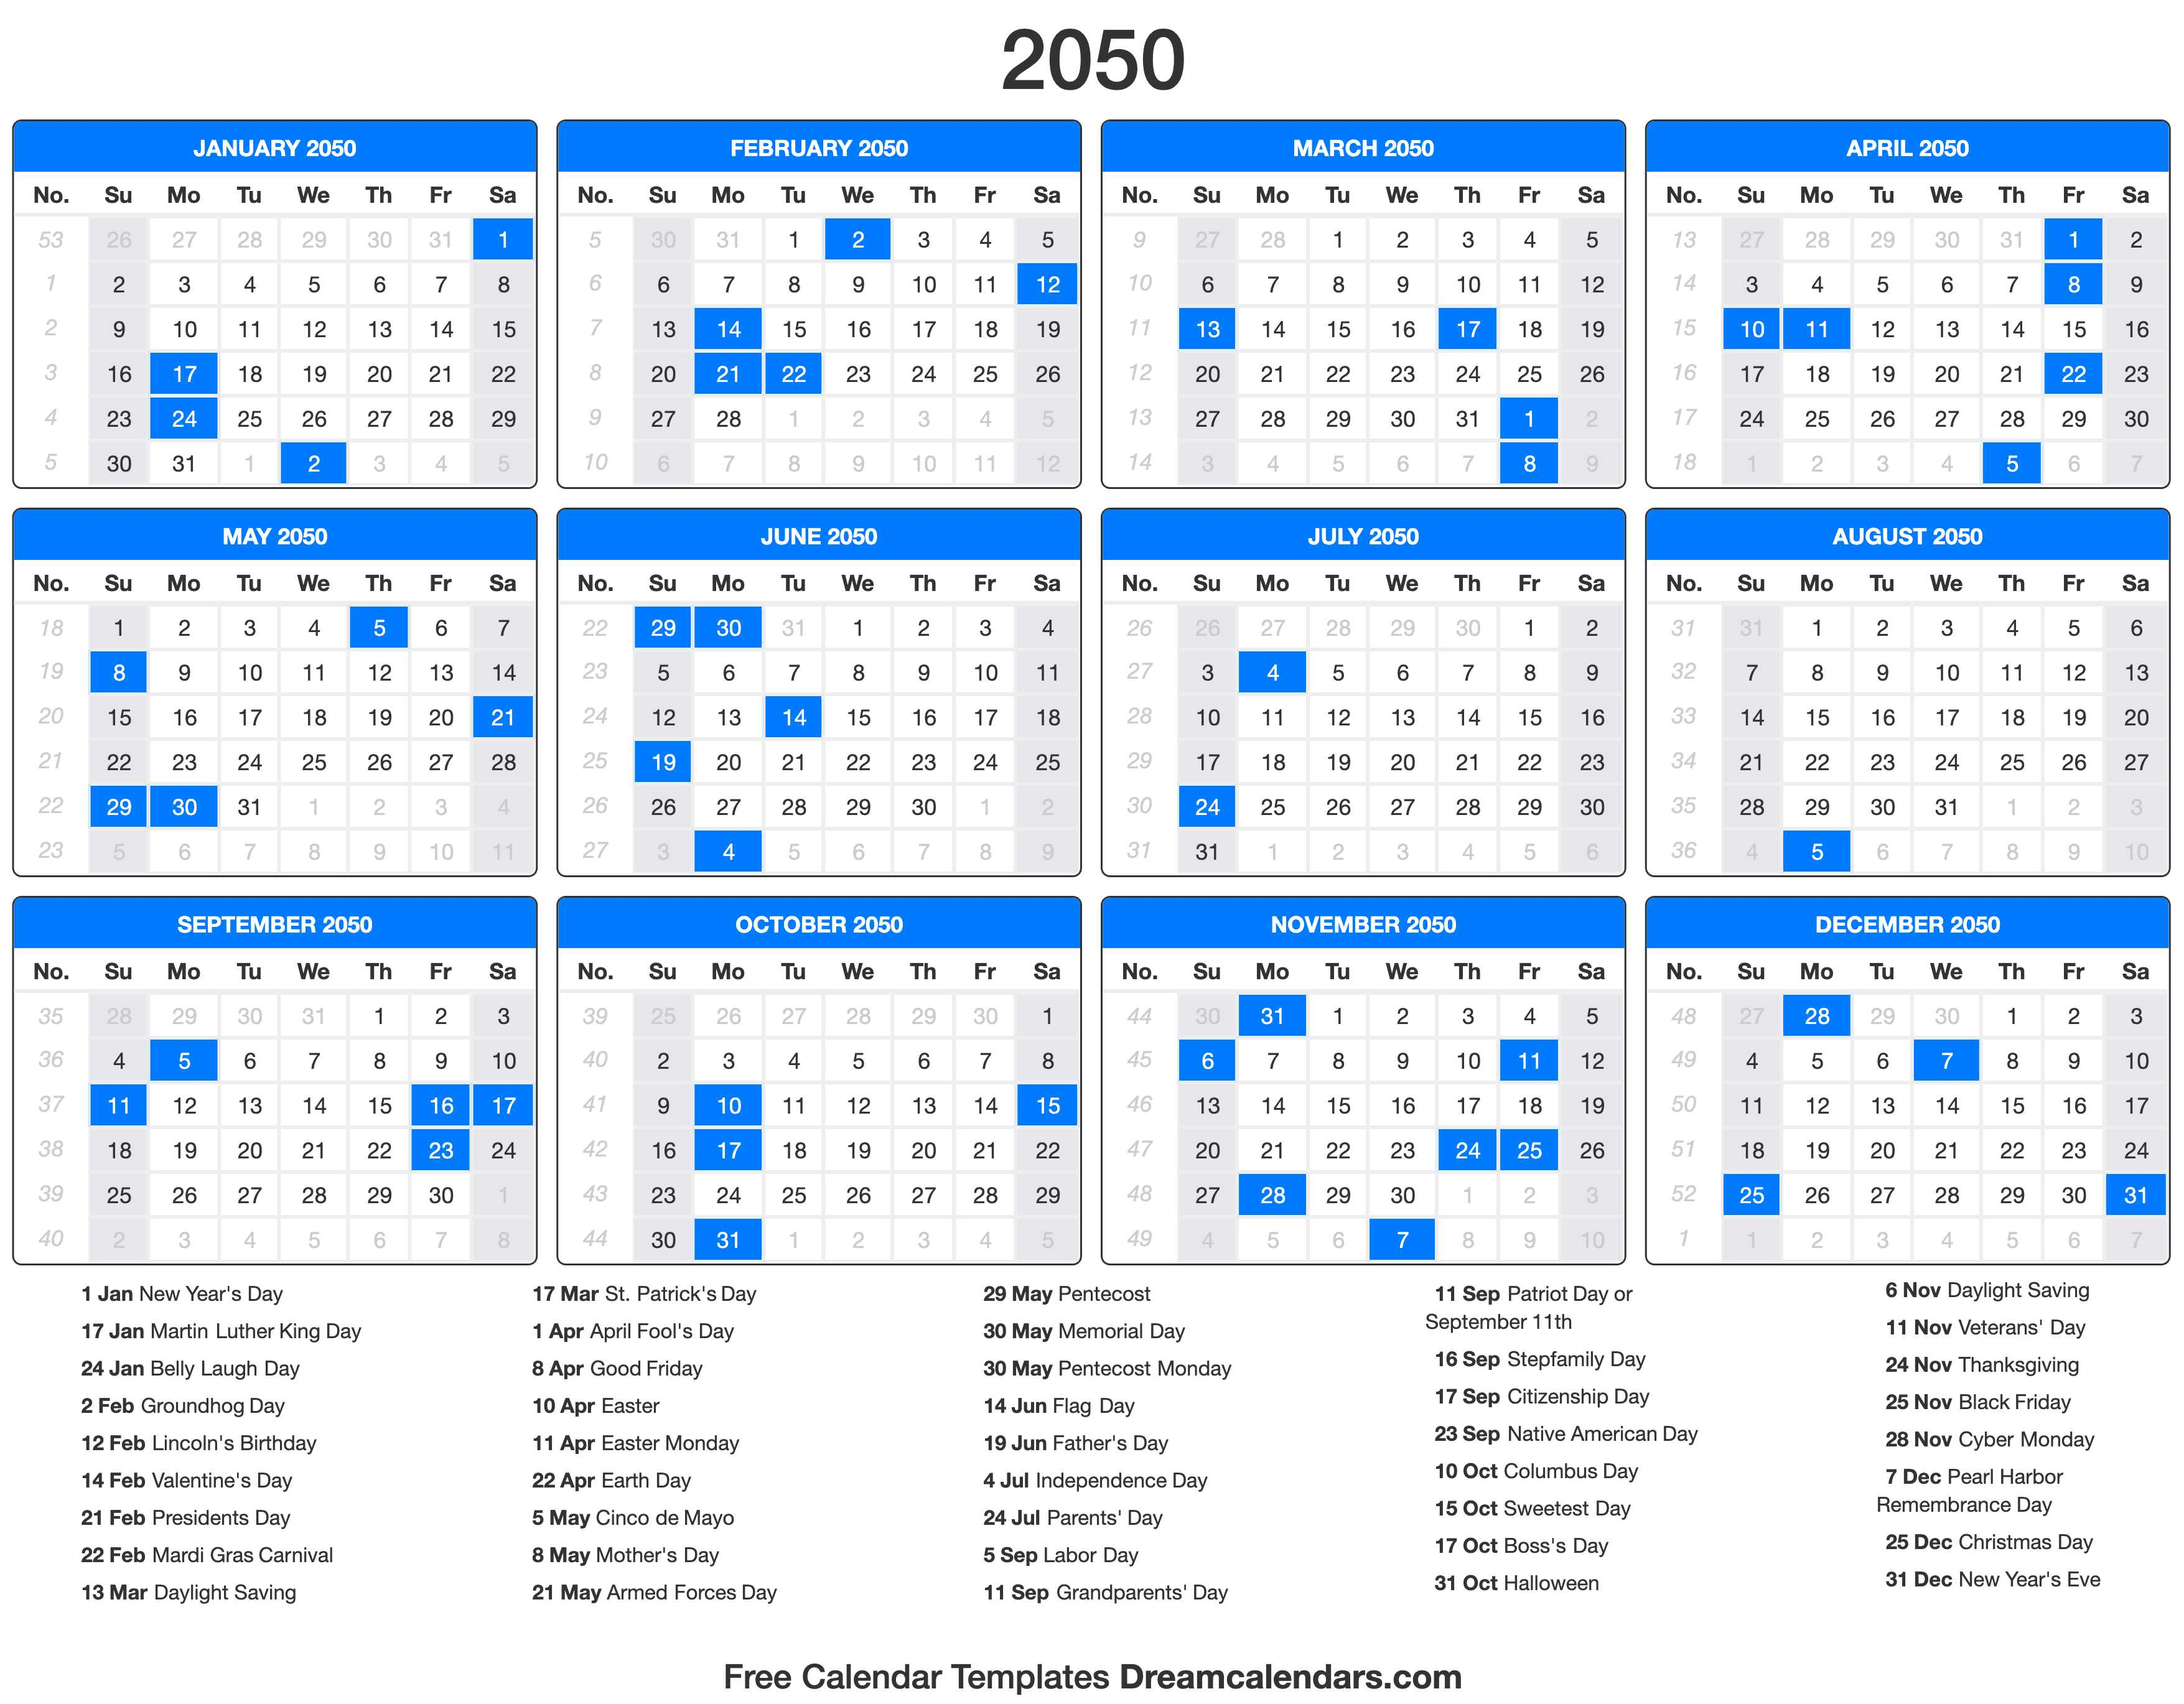 2050 Calendar with holidays